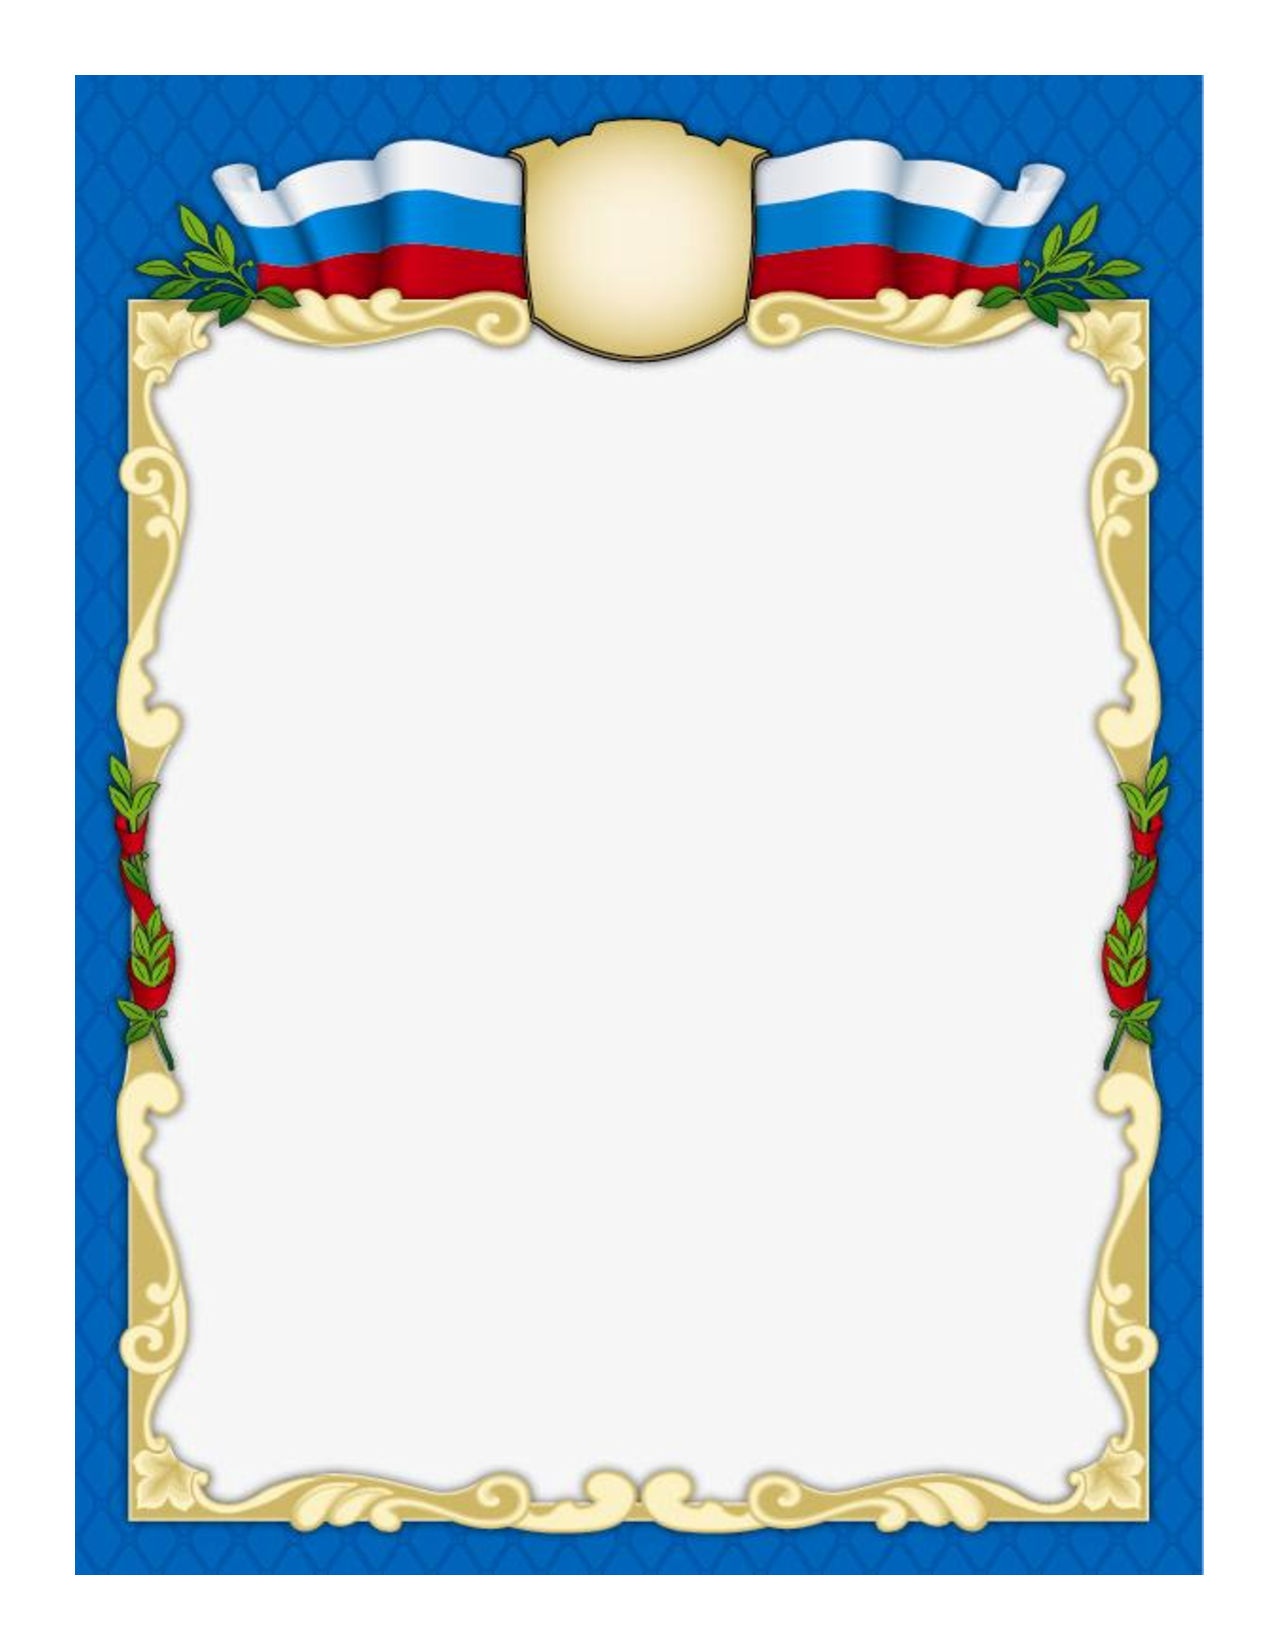 17 certificate borders templates free cliparts that you can download ...